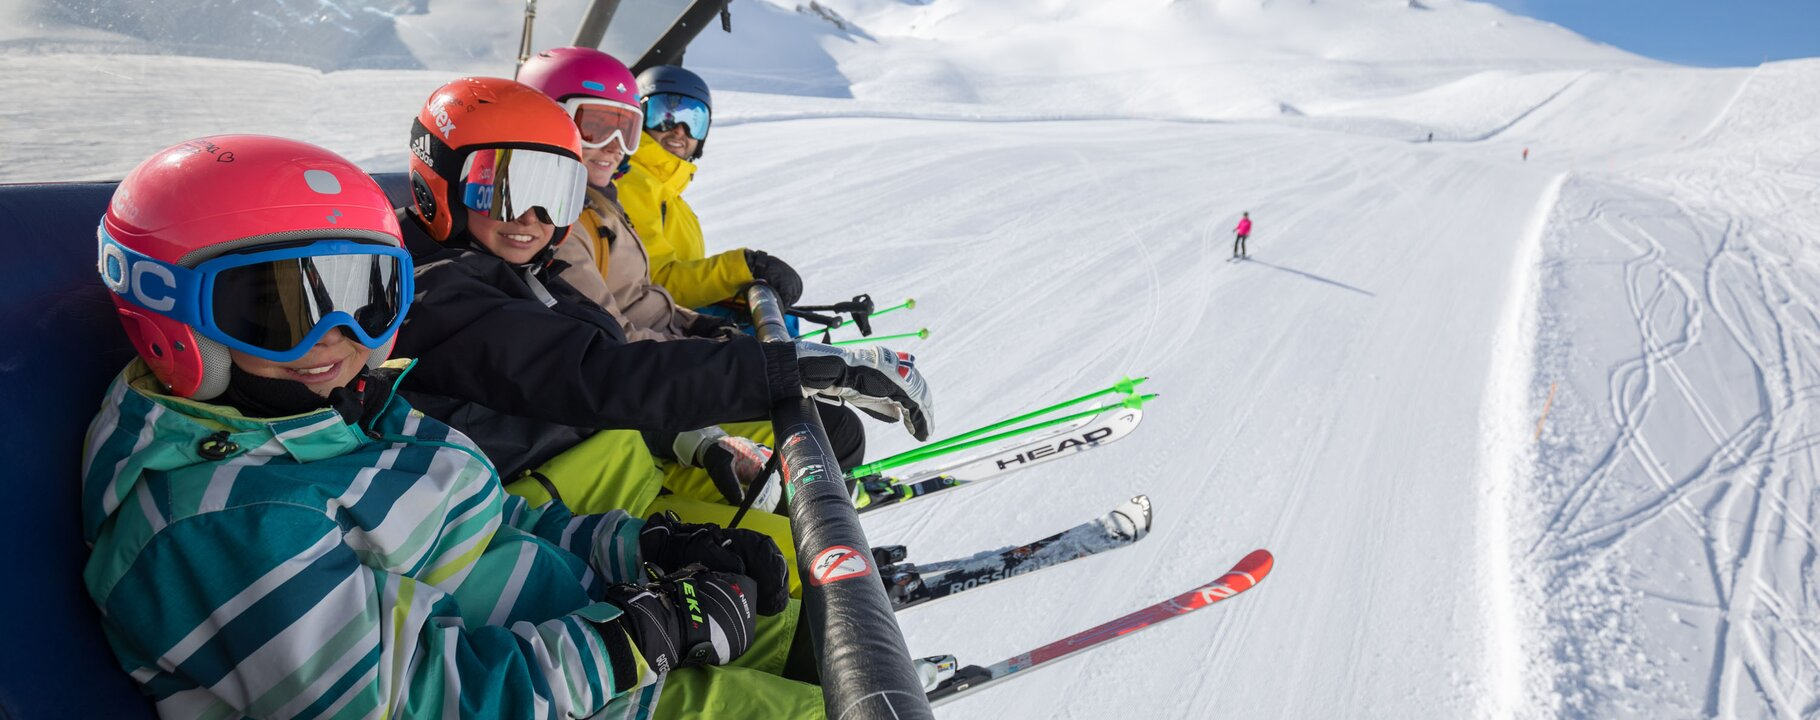 Skiing with the family in Serfaus-Fiss-Ladis in Tyrol Austria | © Andreas Kirschner